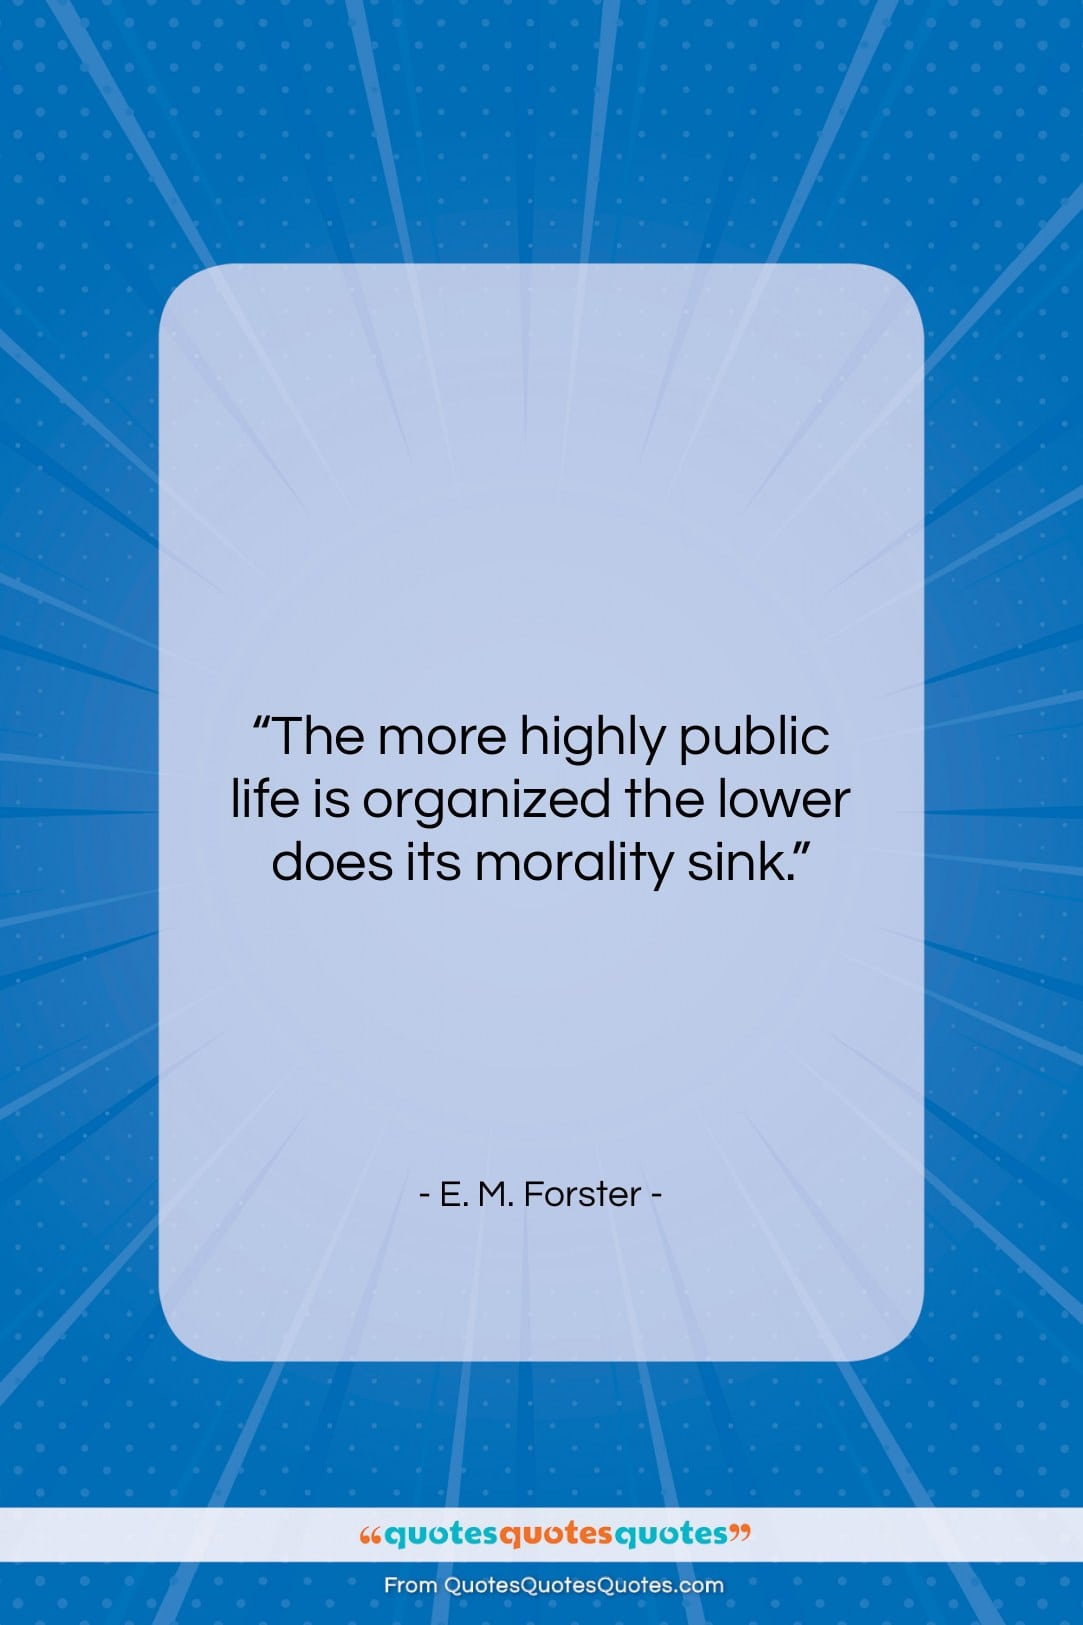 """E. M. Forster quote: """"The more highly public life is organized…""""- at QuotesQuotesQuotes.com"""